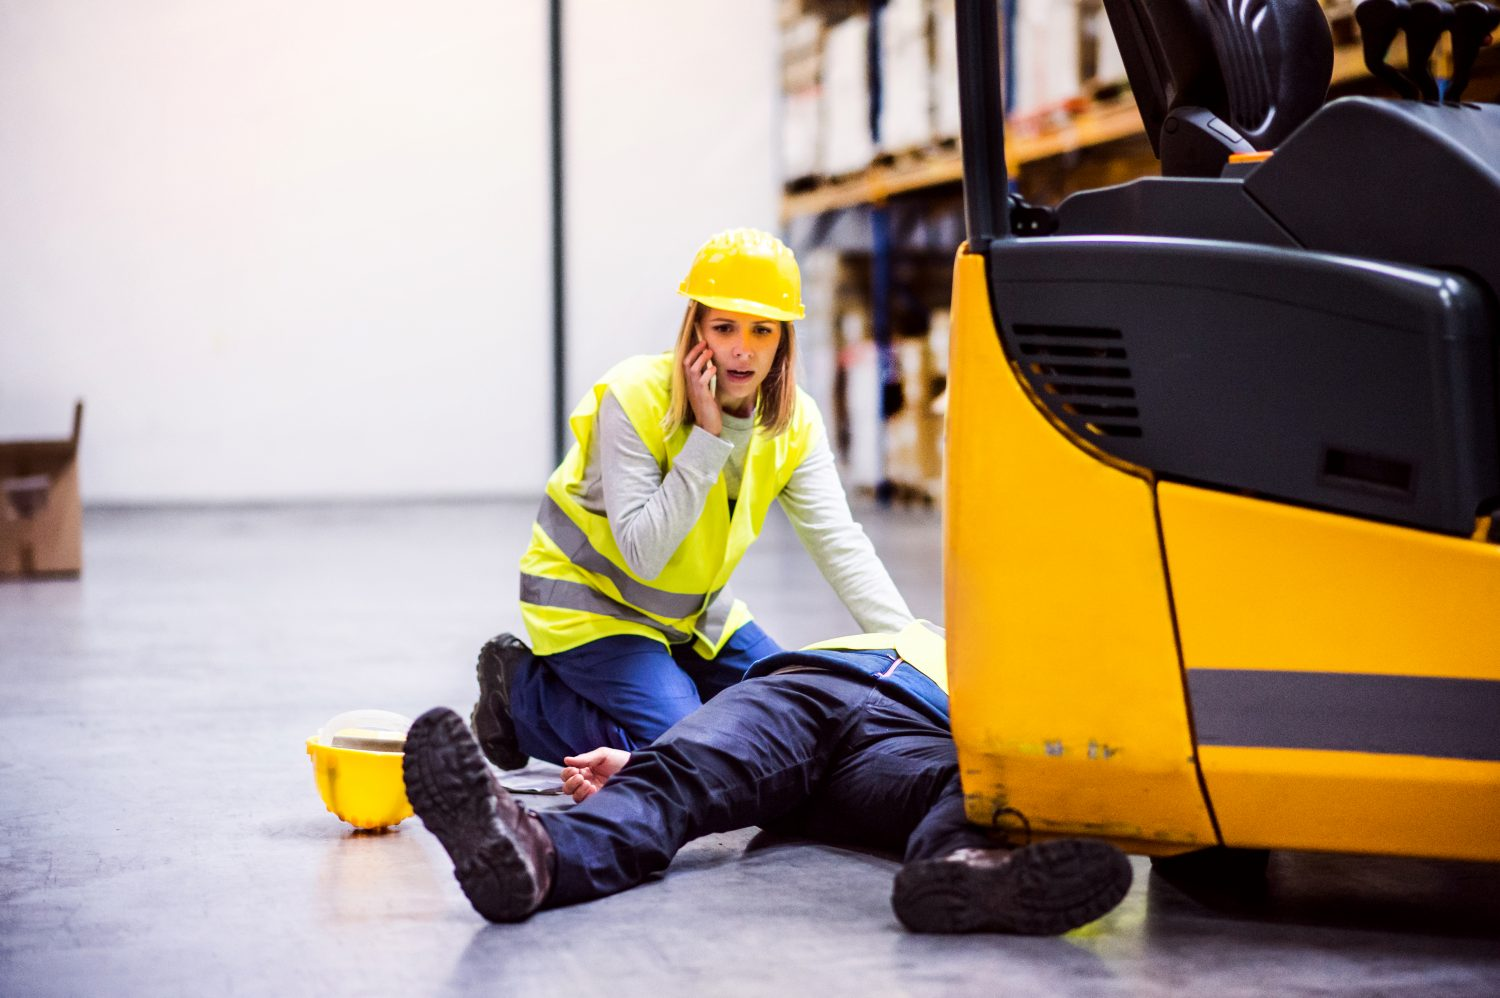 Dangerous workplace machinery – amputations and industrial accidents